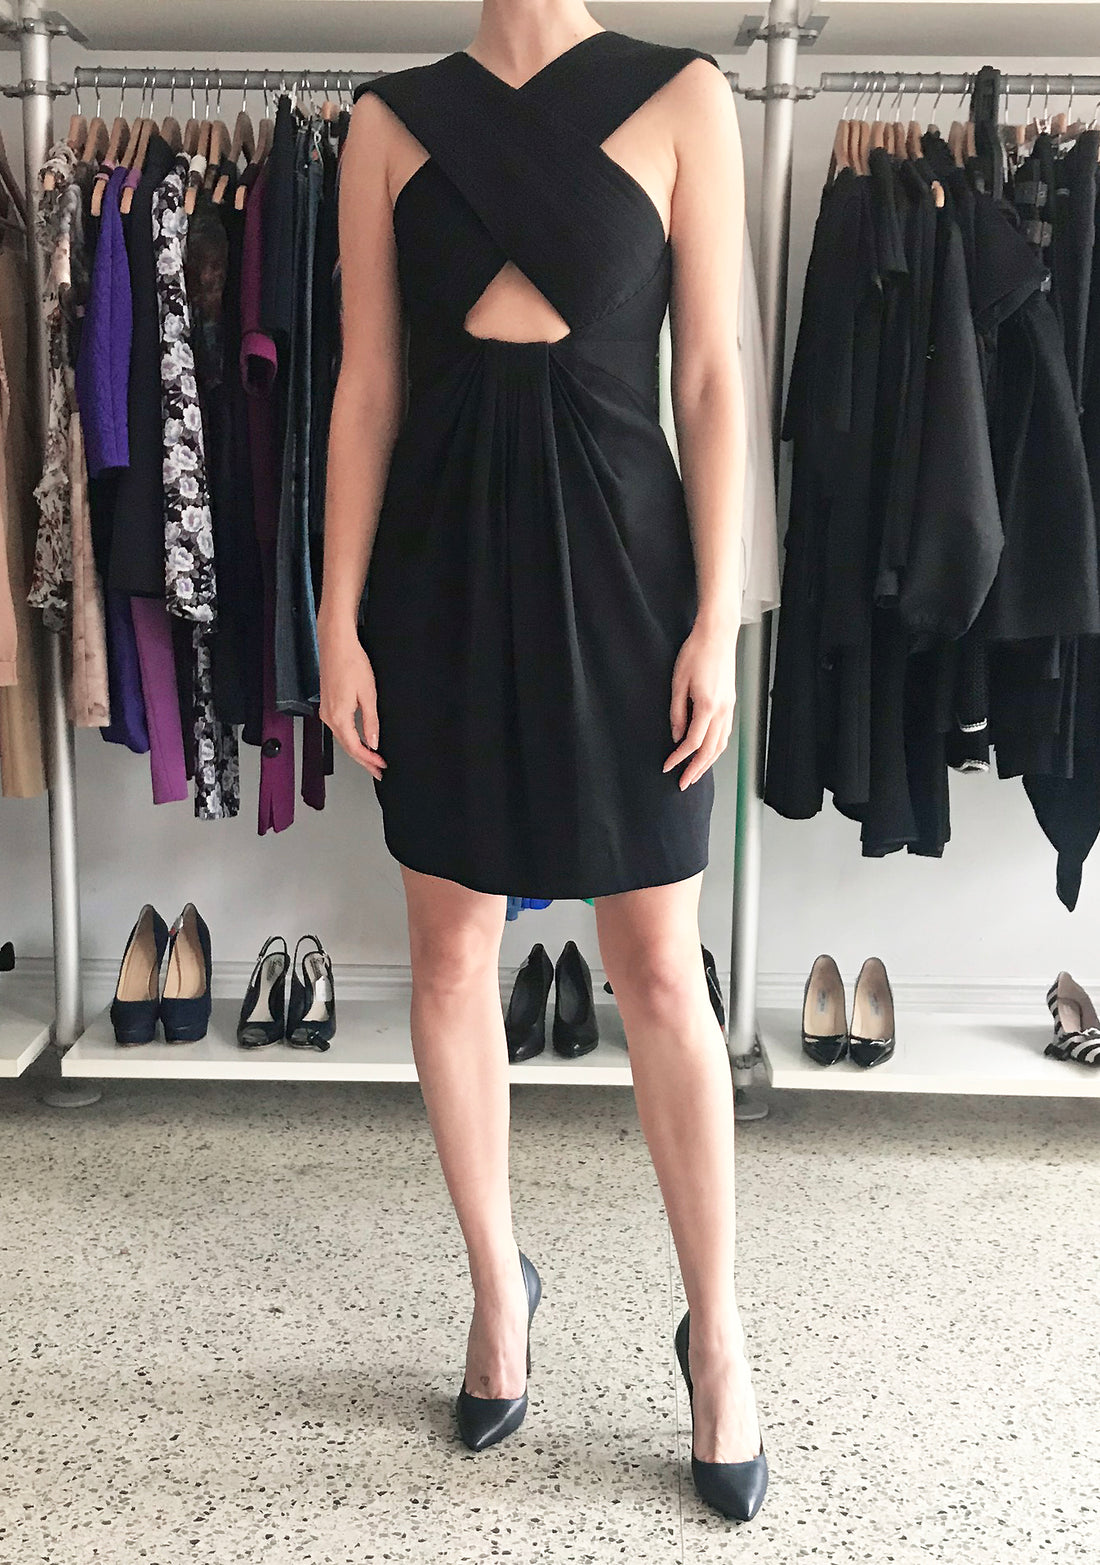 Proenza Schouler Black Cross Over Cut Out Cocktail Dress - 6